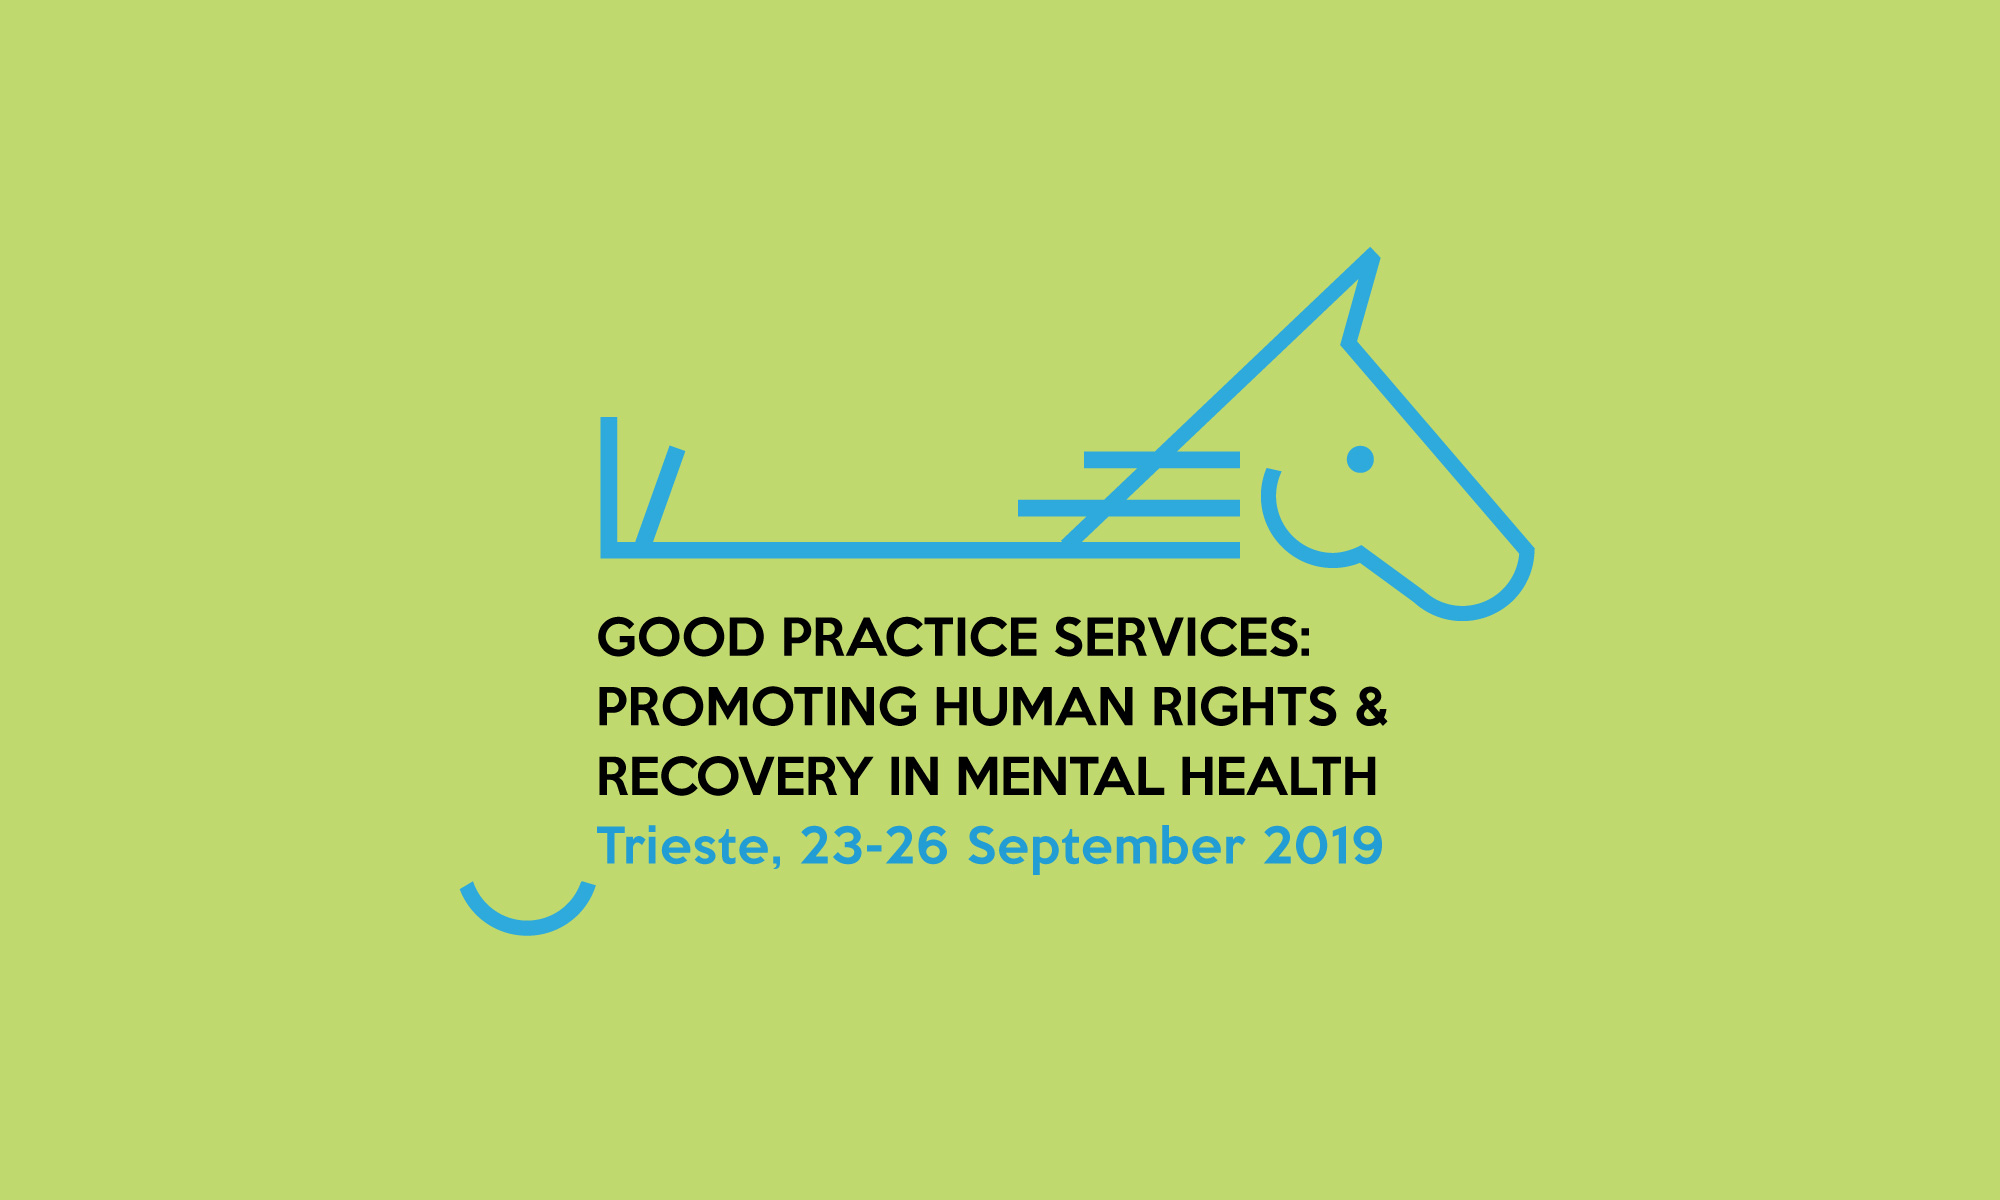 Good Practice Services: Promoting Human Rights & Recovery in Mental Health